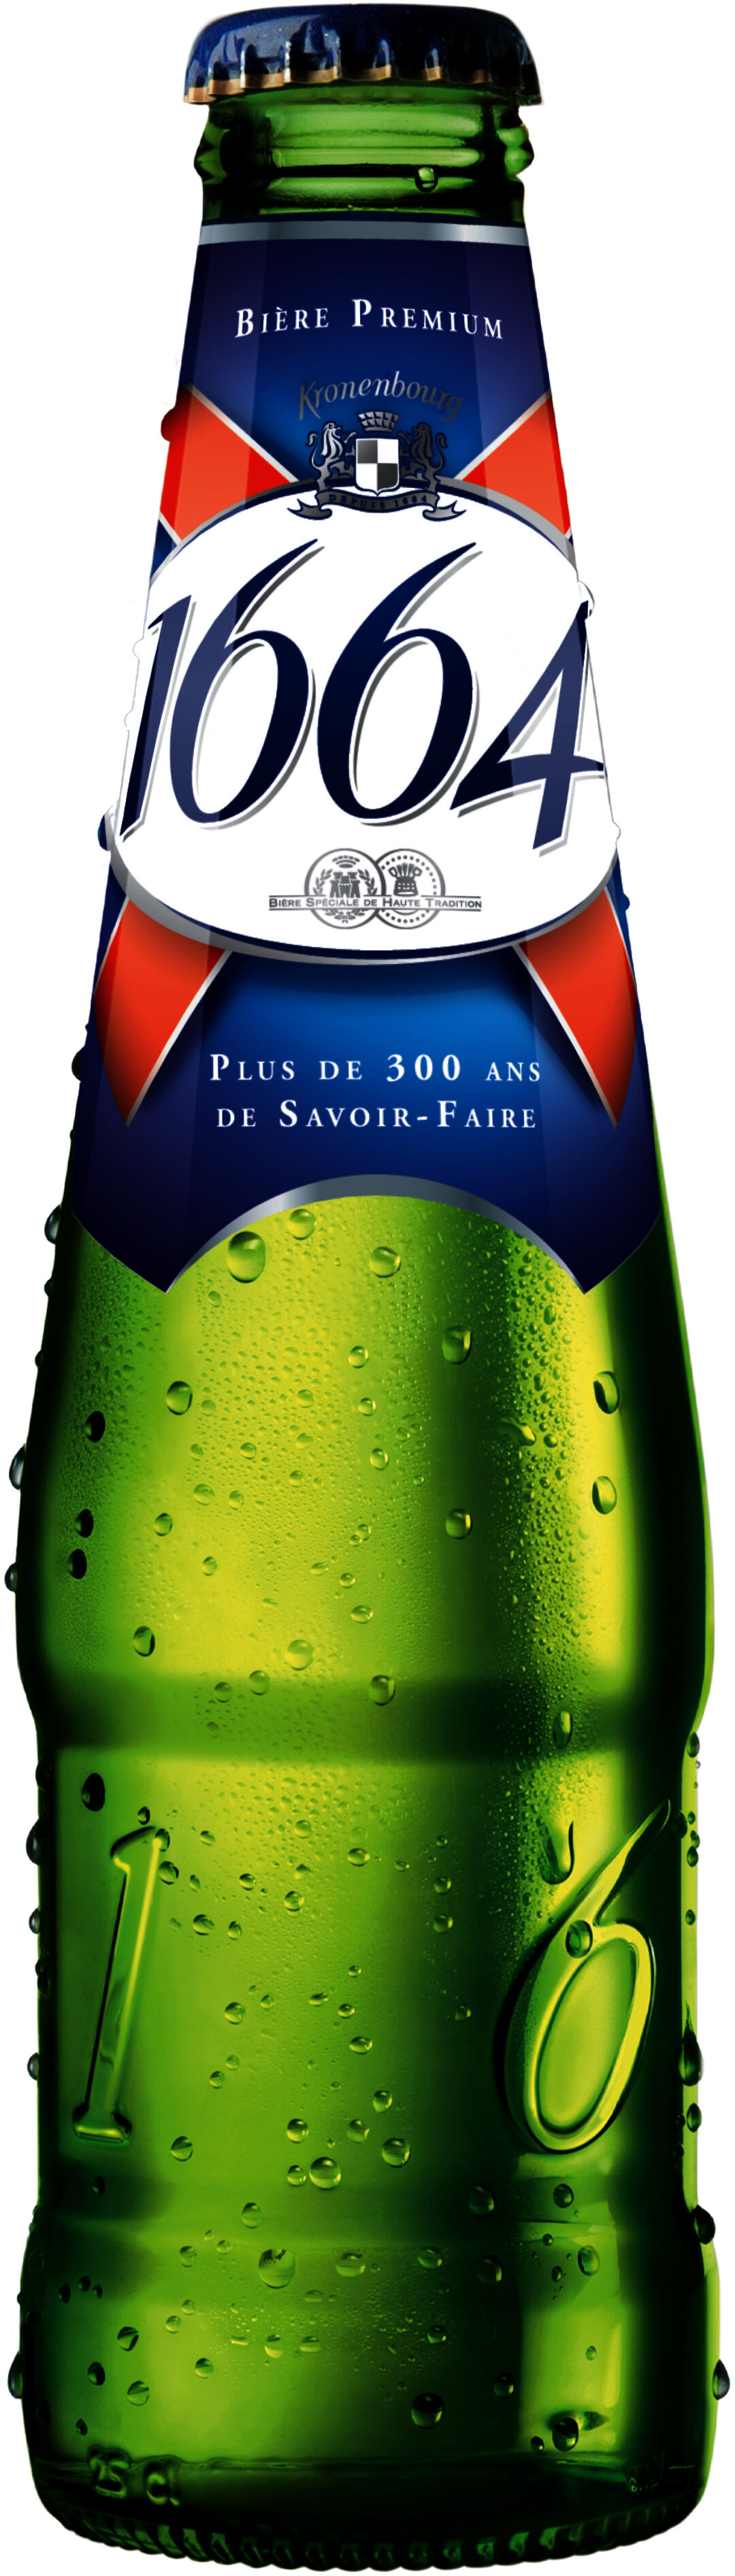 1664 - 25cl 1664 - 5.50 degre alcool - Product - fr